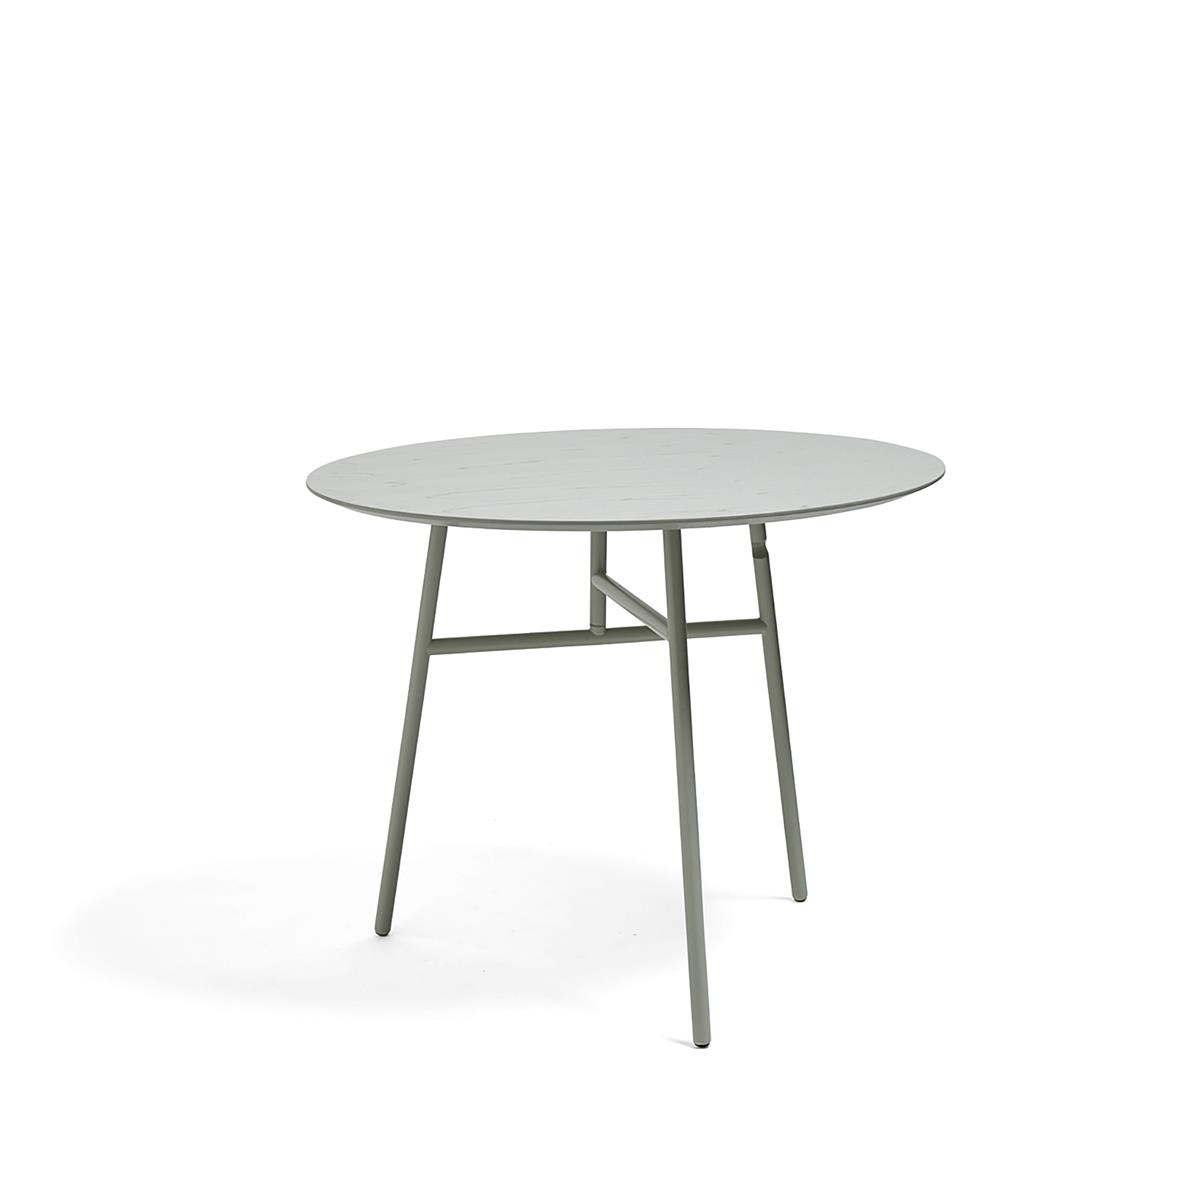 Tilt Top Table Ø90 x H74 - Green Stained Ash